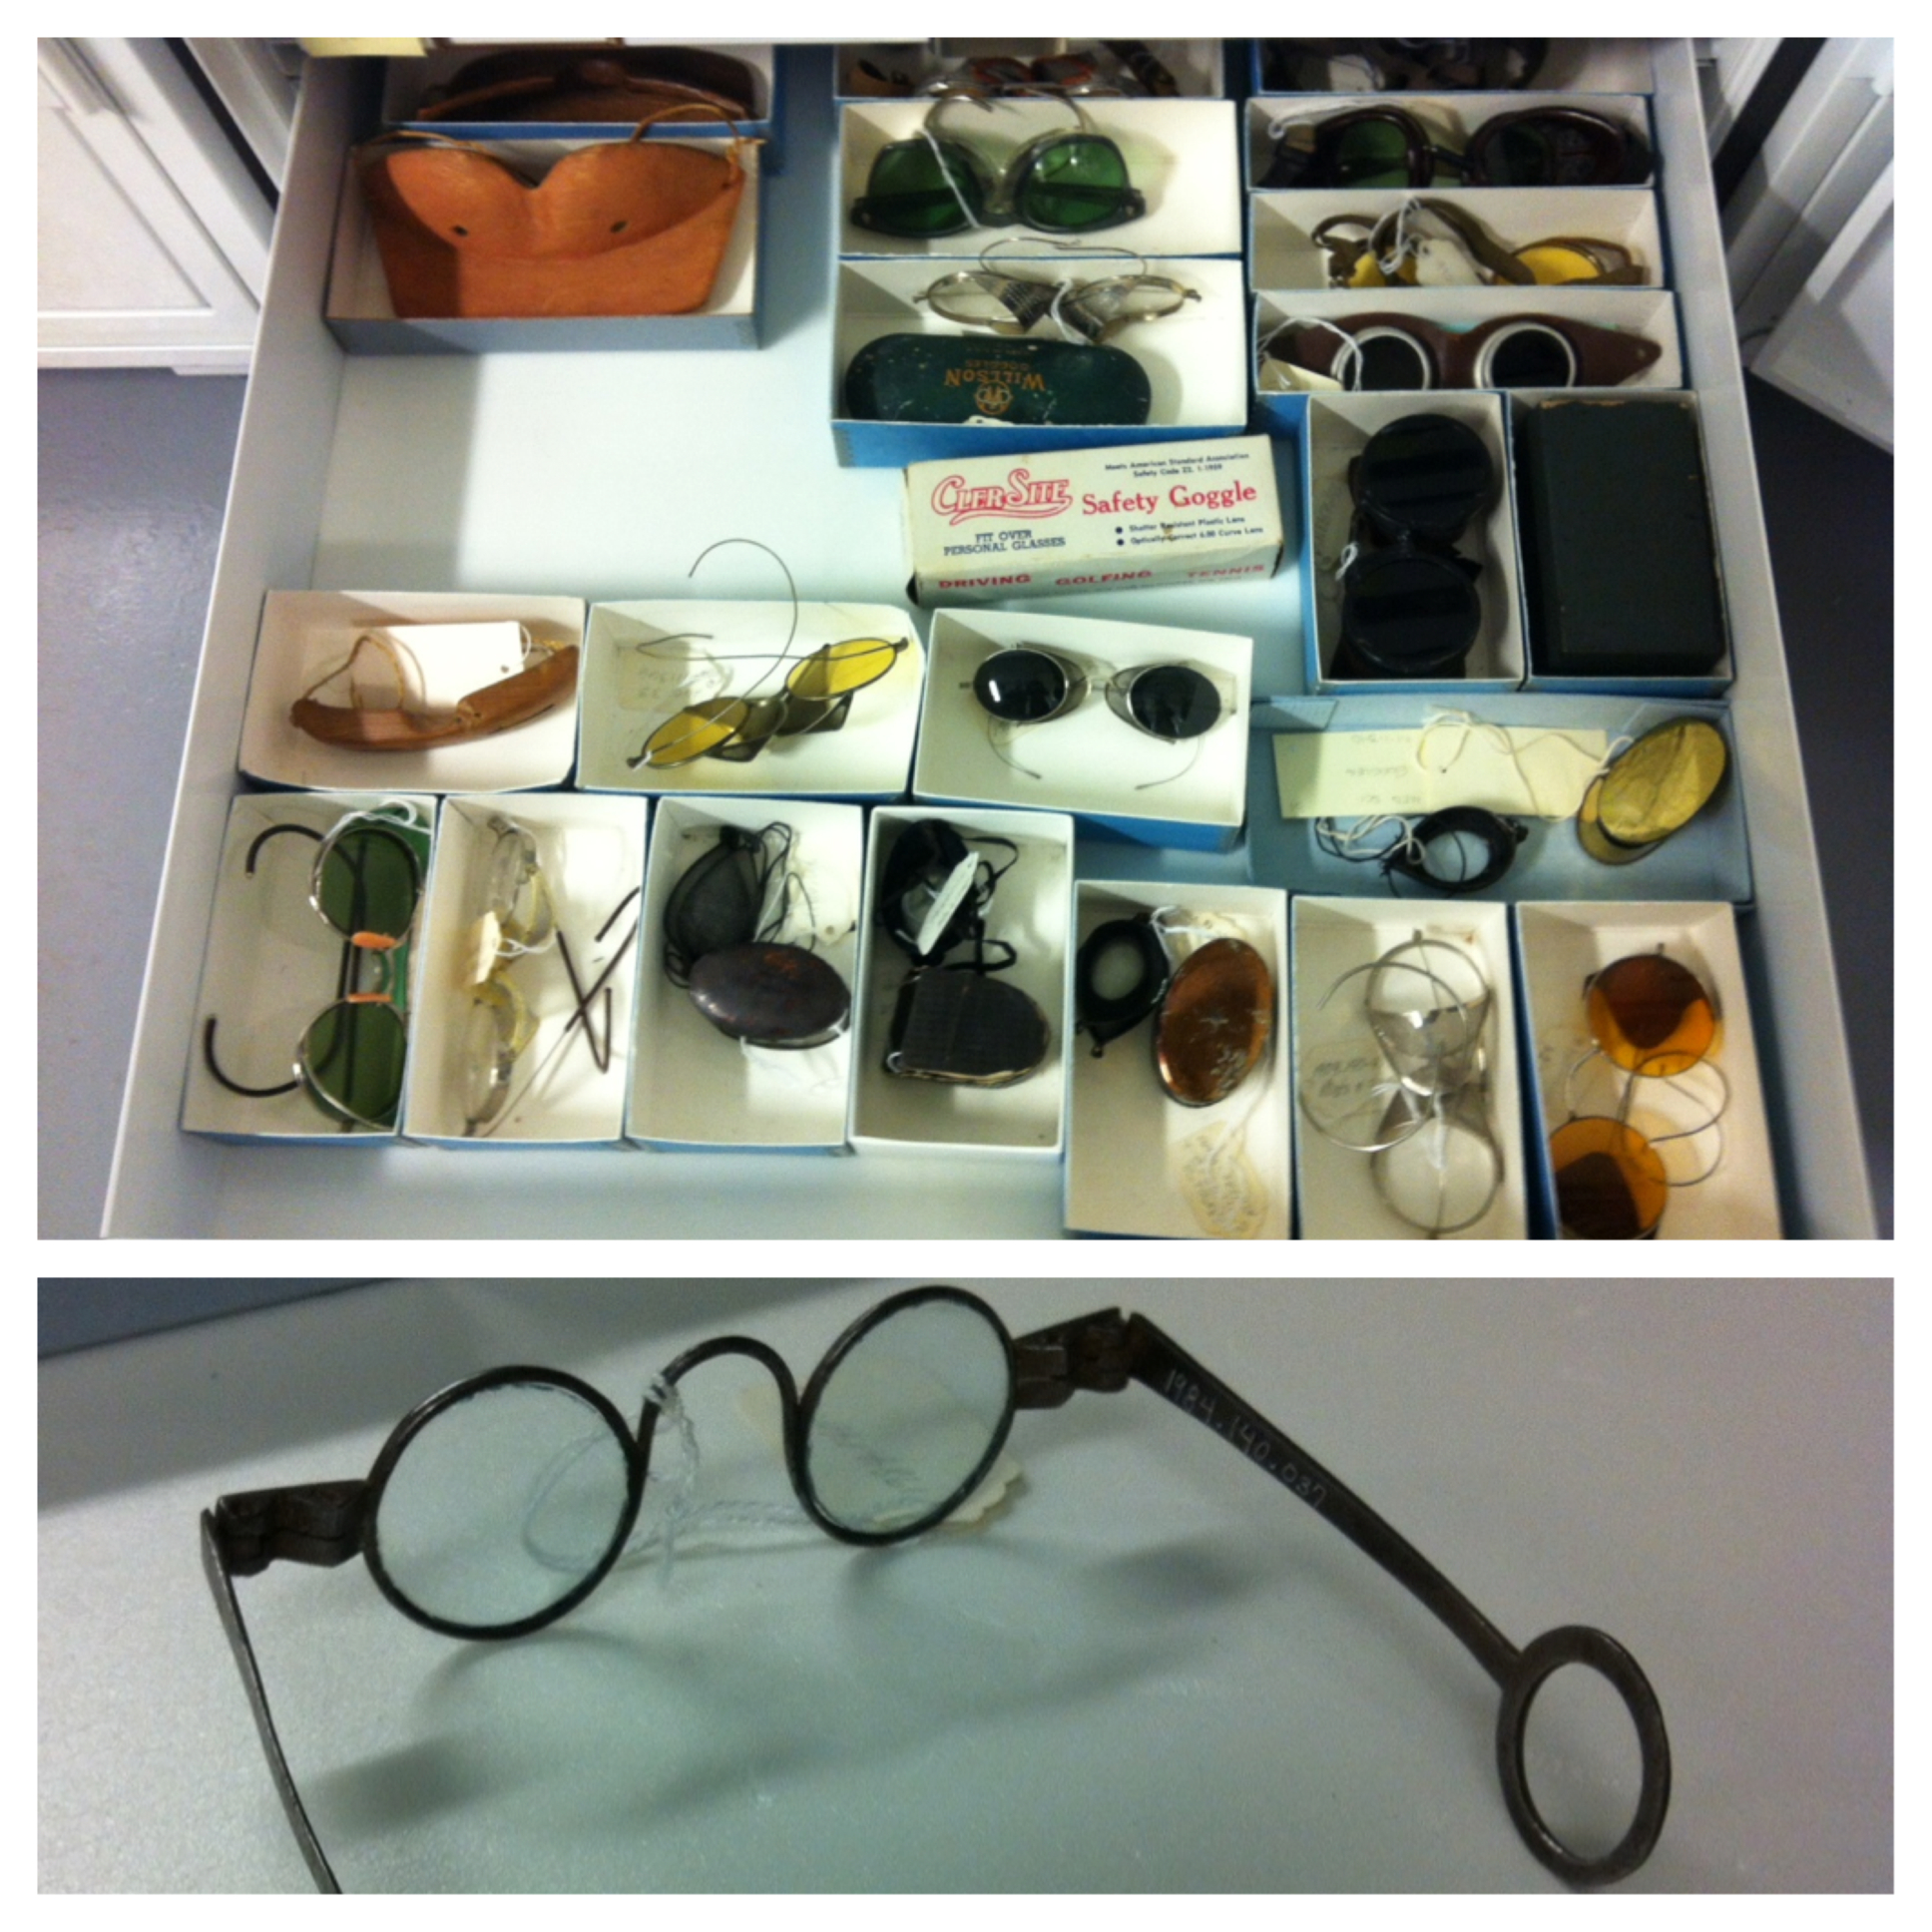 A large collection of eyeglasses from the Medical Collections